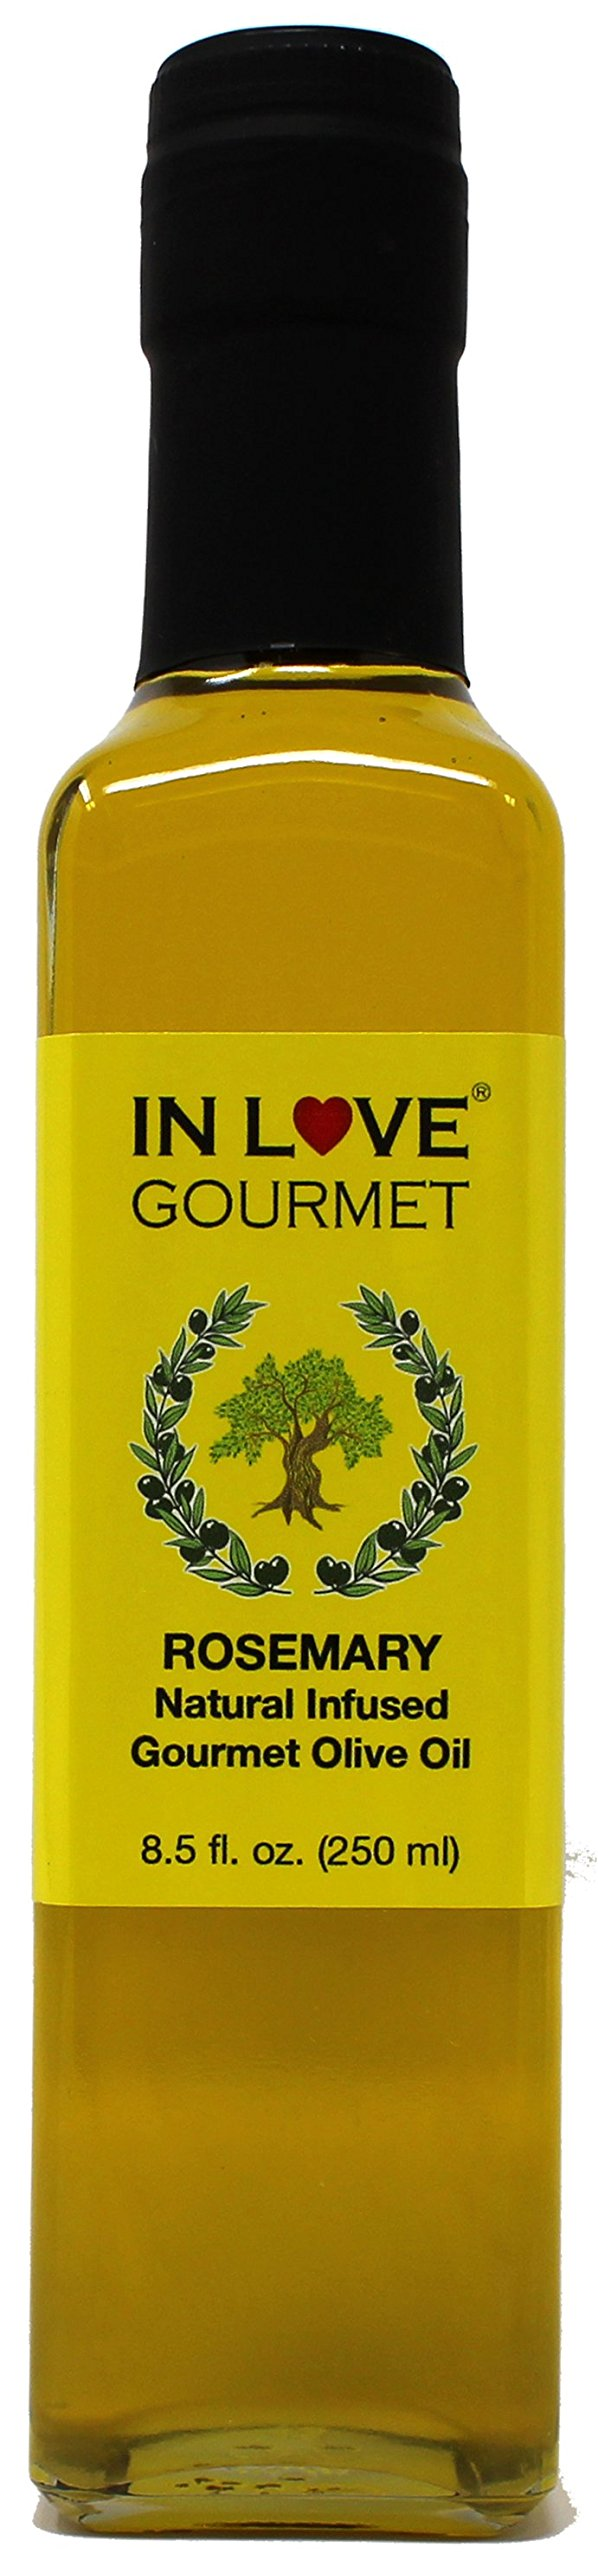 In Love Gourmet Rosemary Natural Flavor Infused Olive Oil 250ML/8.5oz Great Tossed with Pasta, on Salads, on Lamb or Fish, as a Sandwich Spread, for Bread Dipping and in Marinades